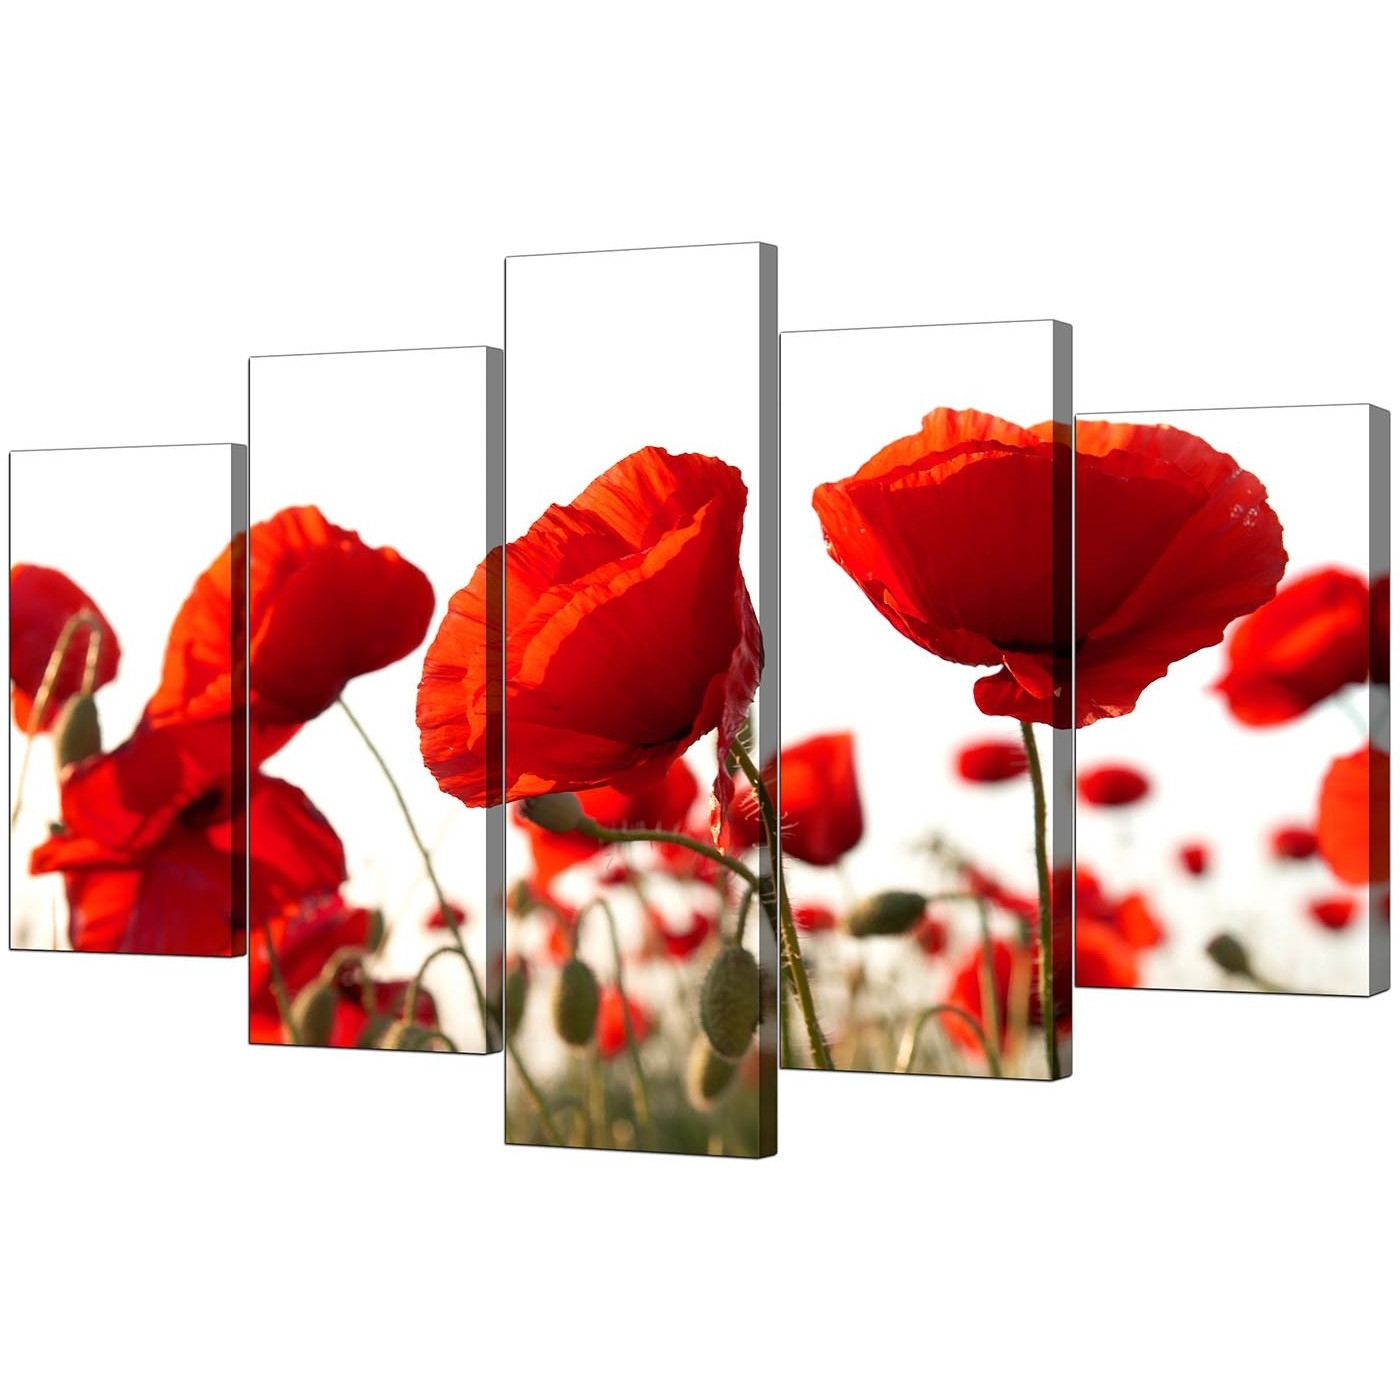 Extra Large Poppies Canvas Prints Uk 5 Part In Red Within Most Recently Released Poppies Canvas Wall Art (Gallery 1 of 15)